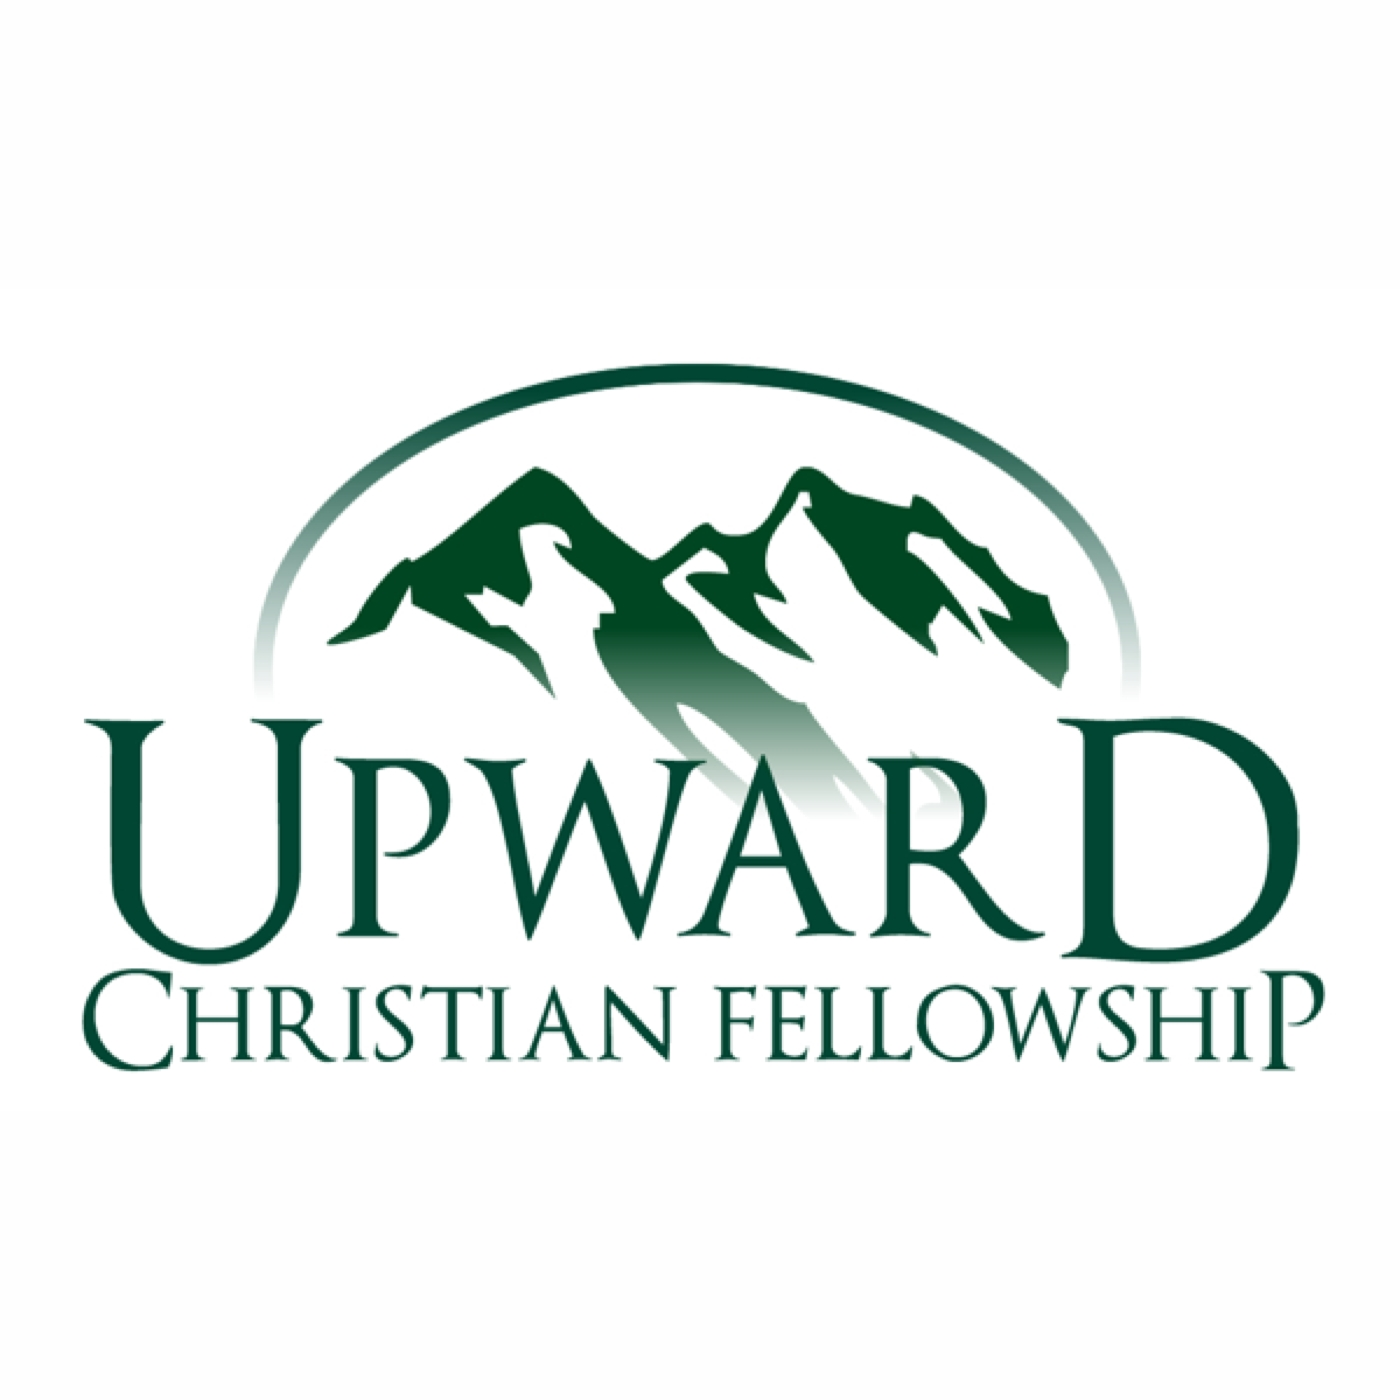 Upward Christian Fellowship